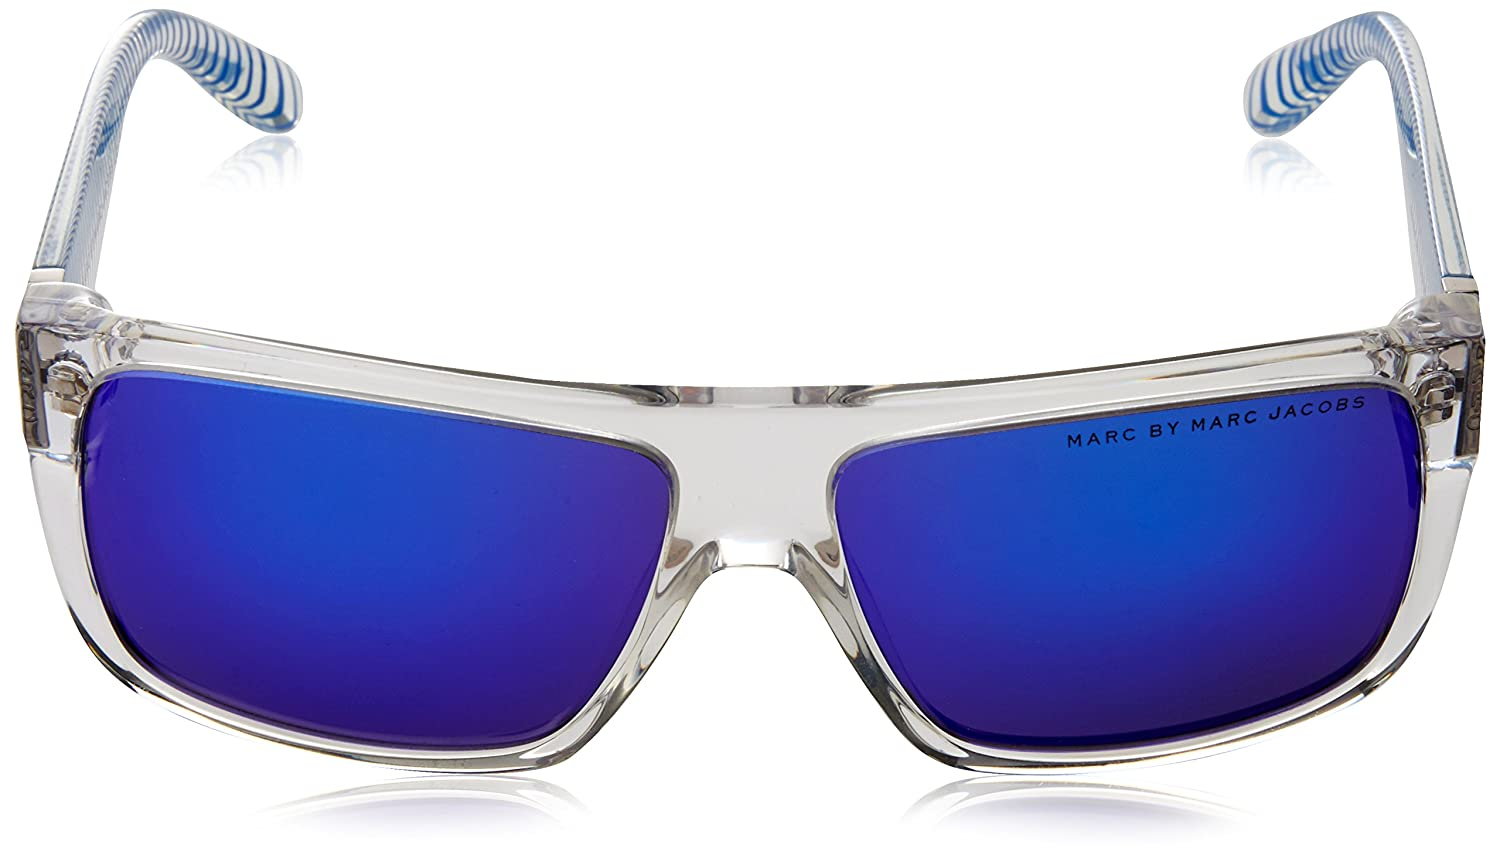 0900625af336 Amazon.com: Marc by Marc Jacobs 250607W7B57Z0 MMJ 096-N-S W7B Z0  Translucent Crystal Blue Sunglasses: Clothing